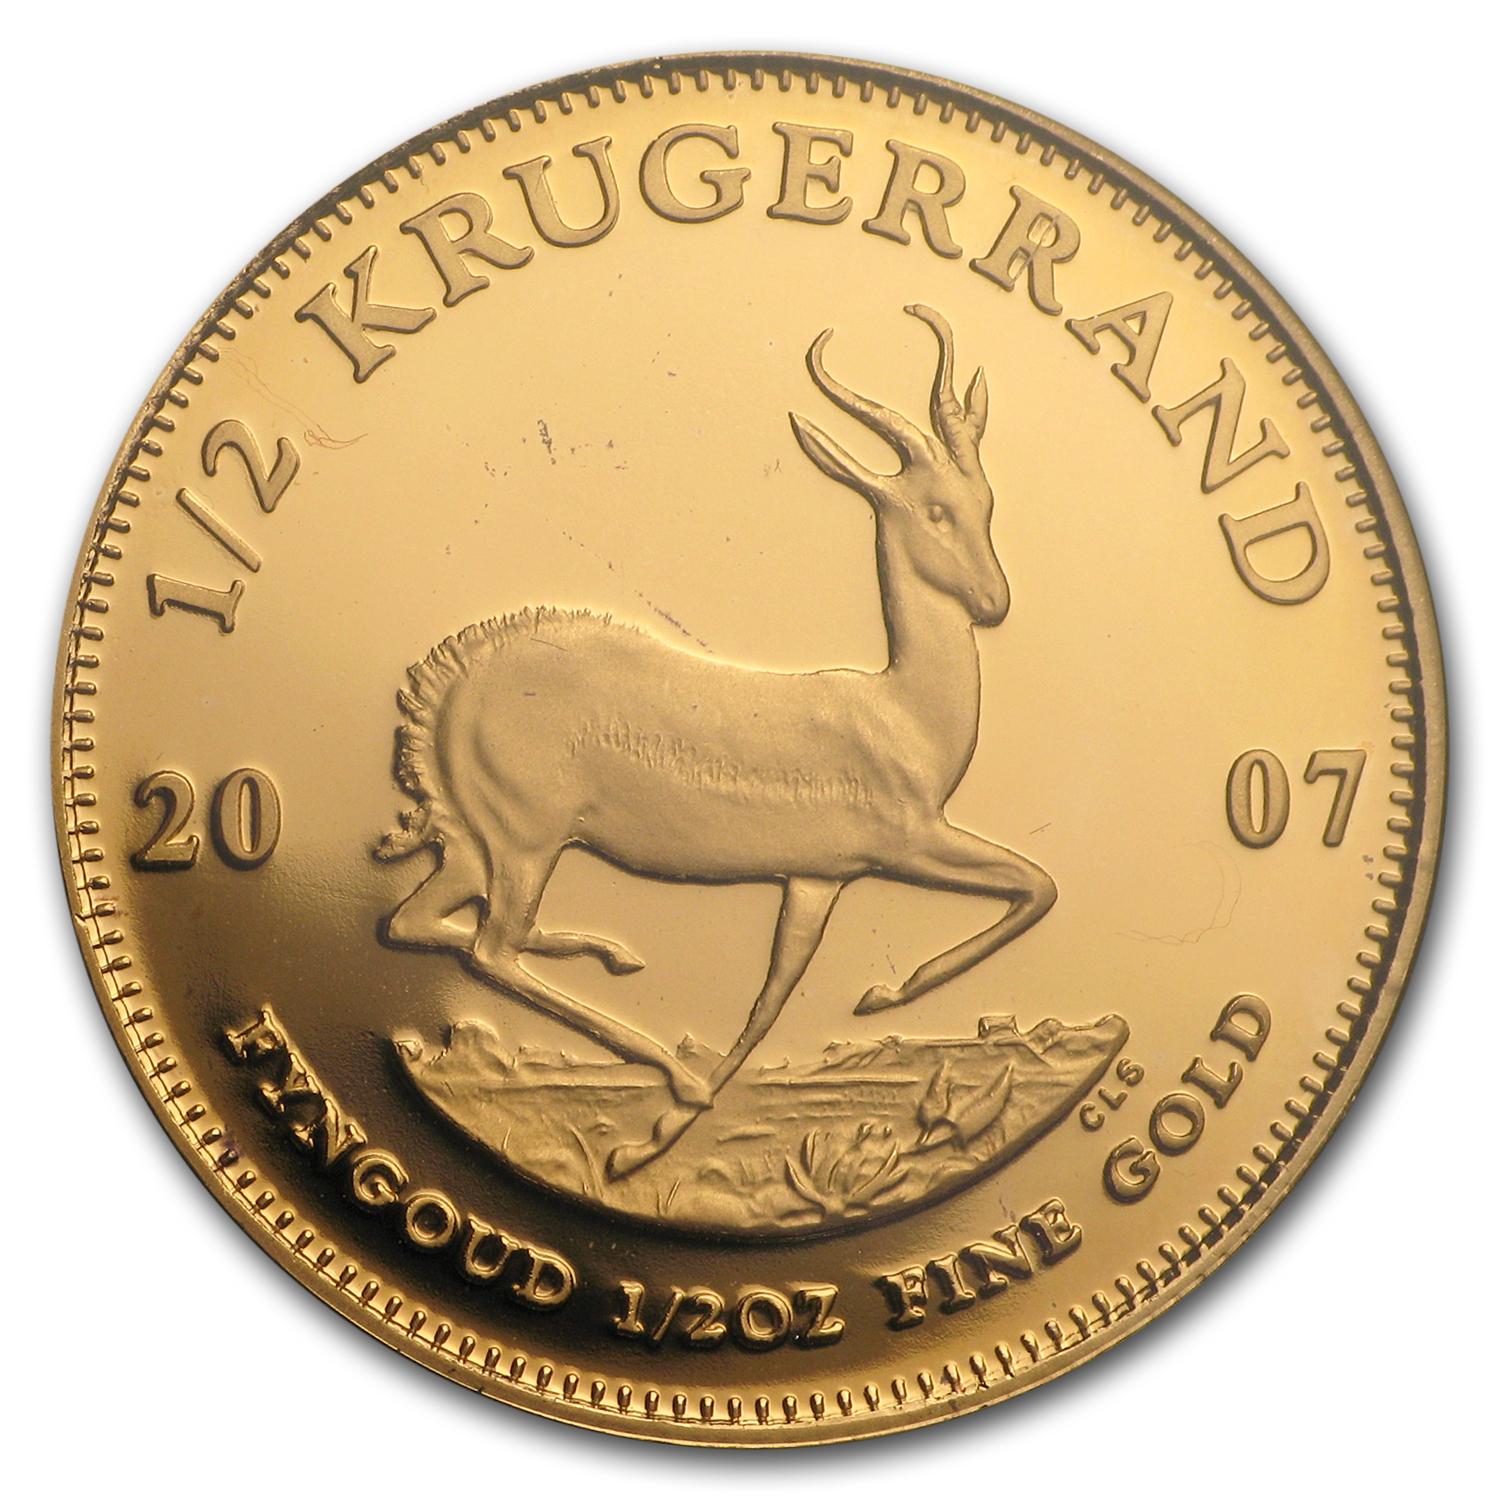 2007 4-Coin Gold South African Krugerrand Proof Set (FS)